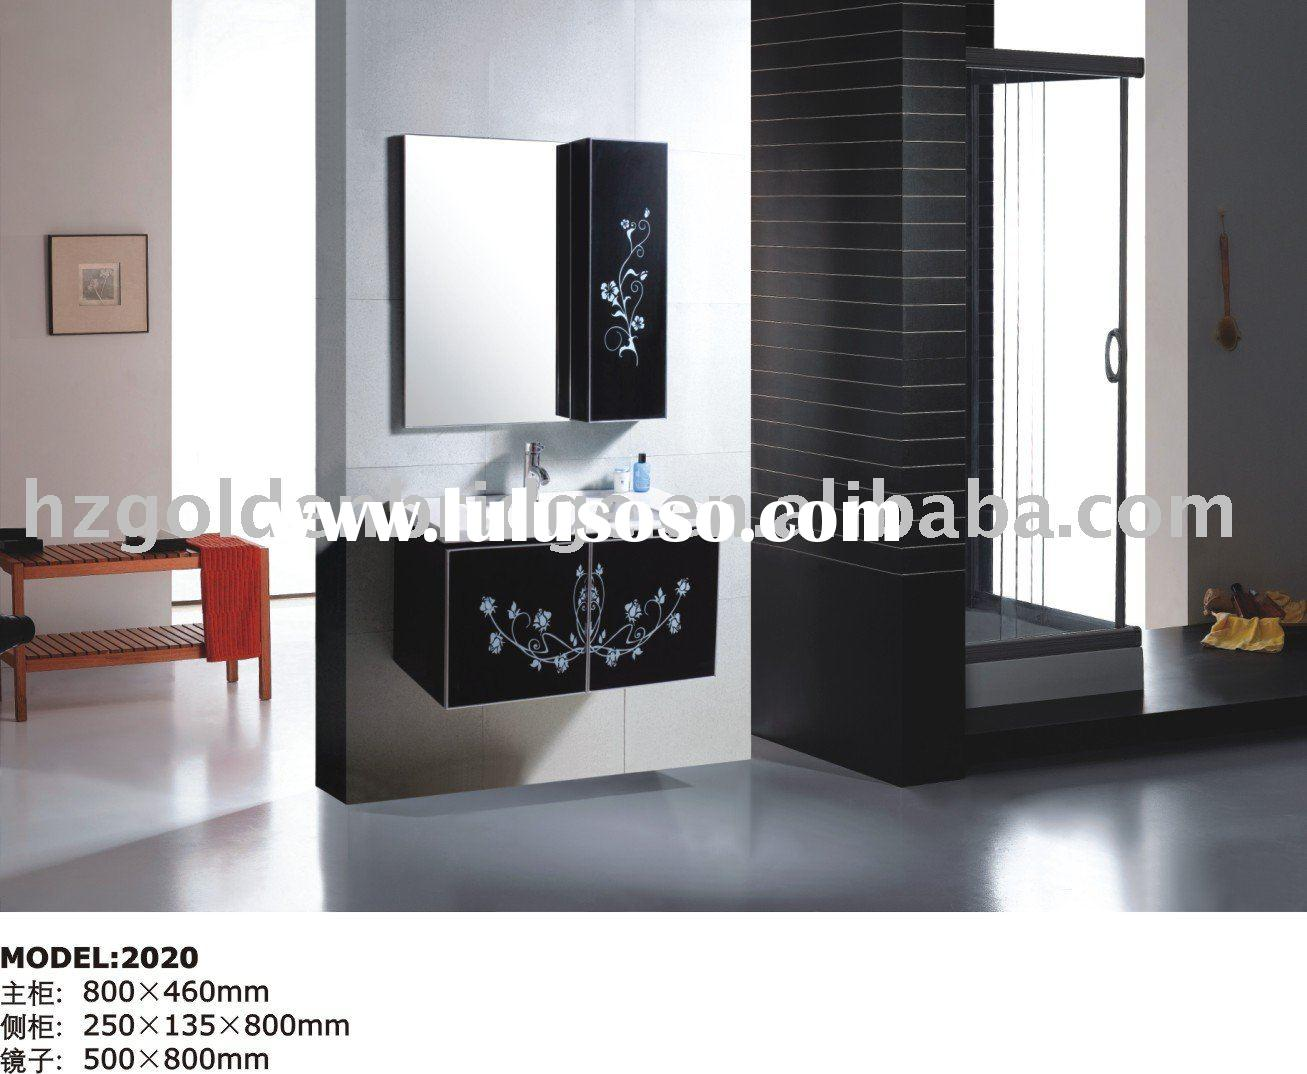 Modern black pvc bathroom cabinet 2031